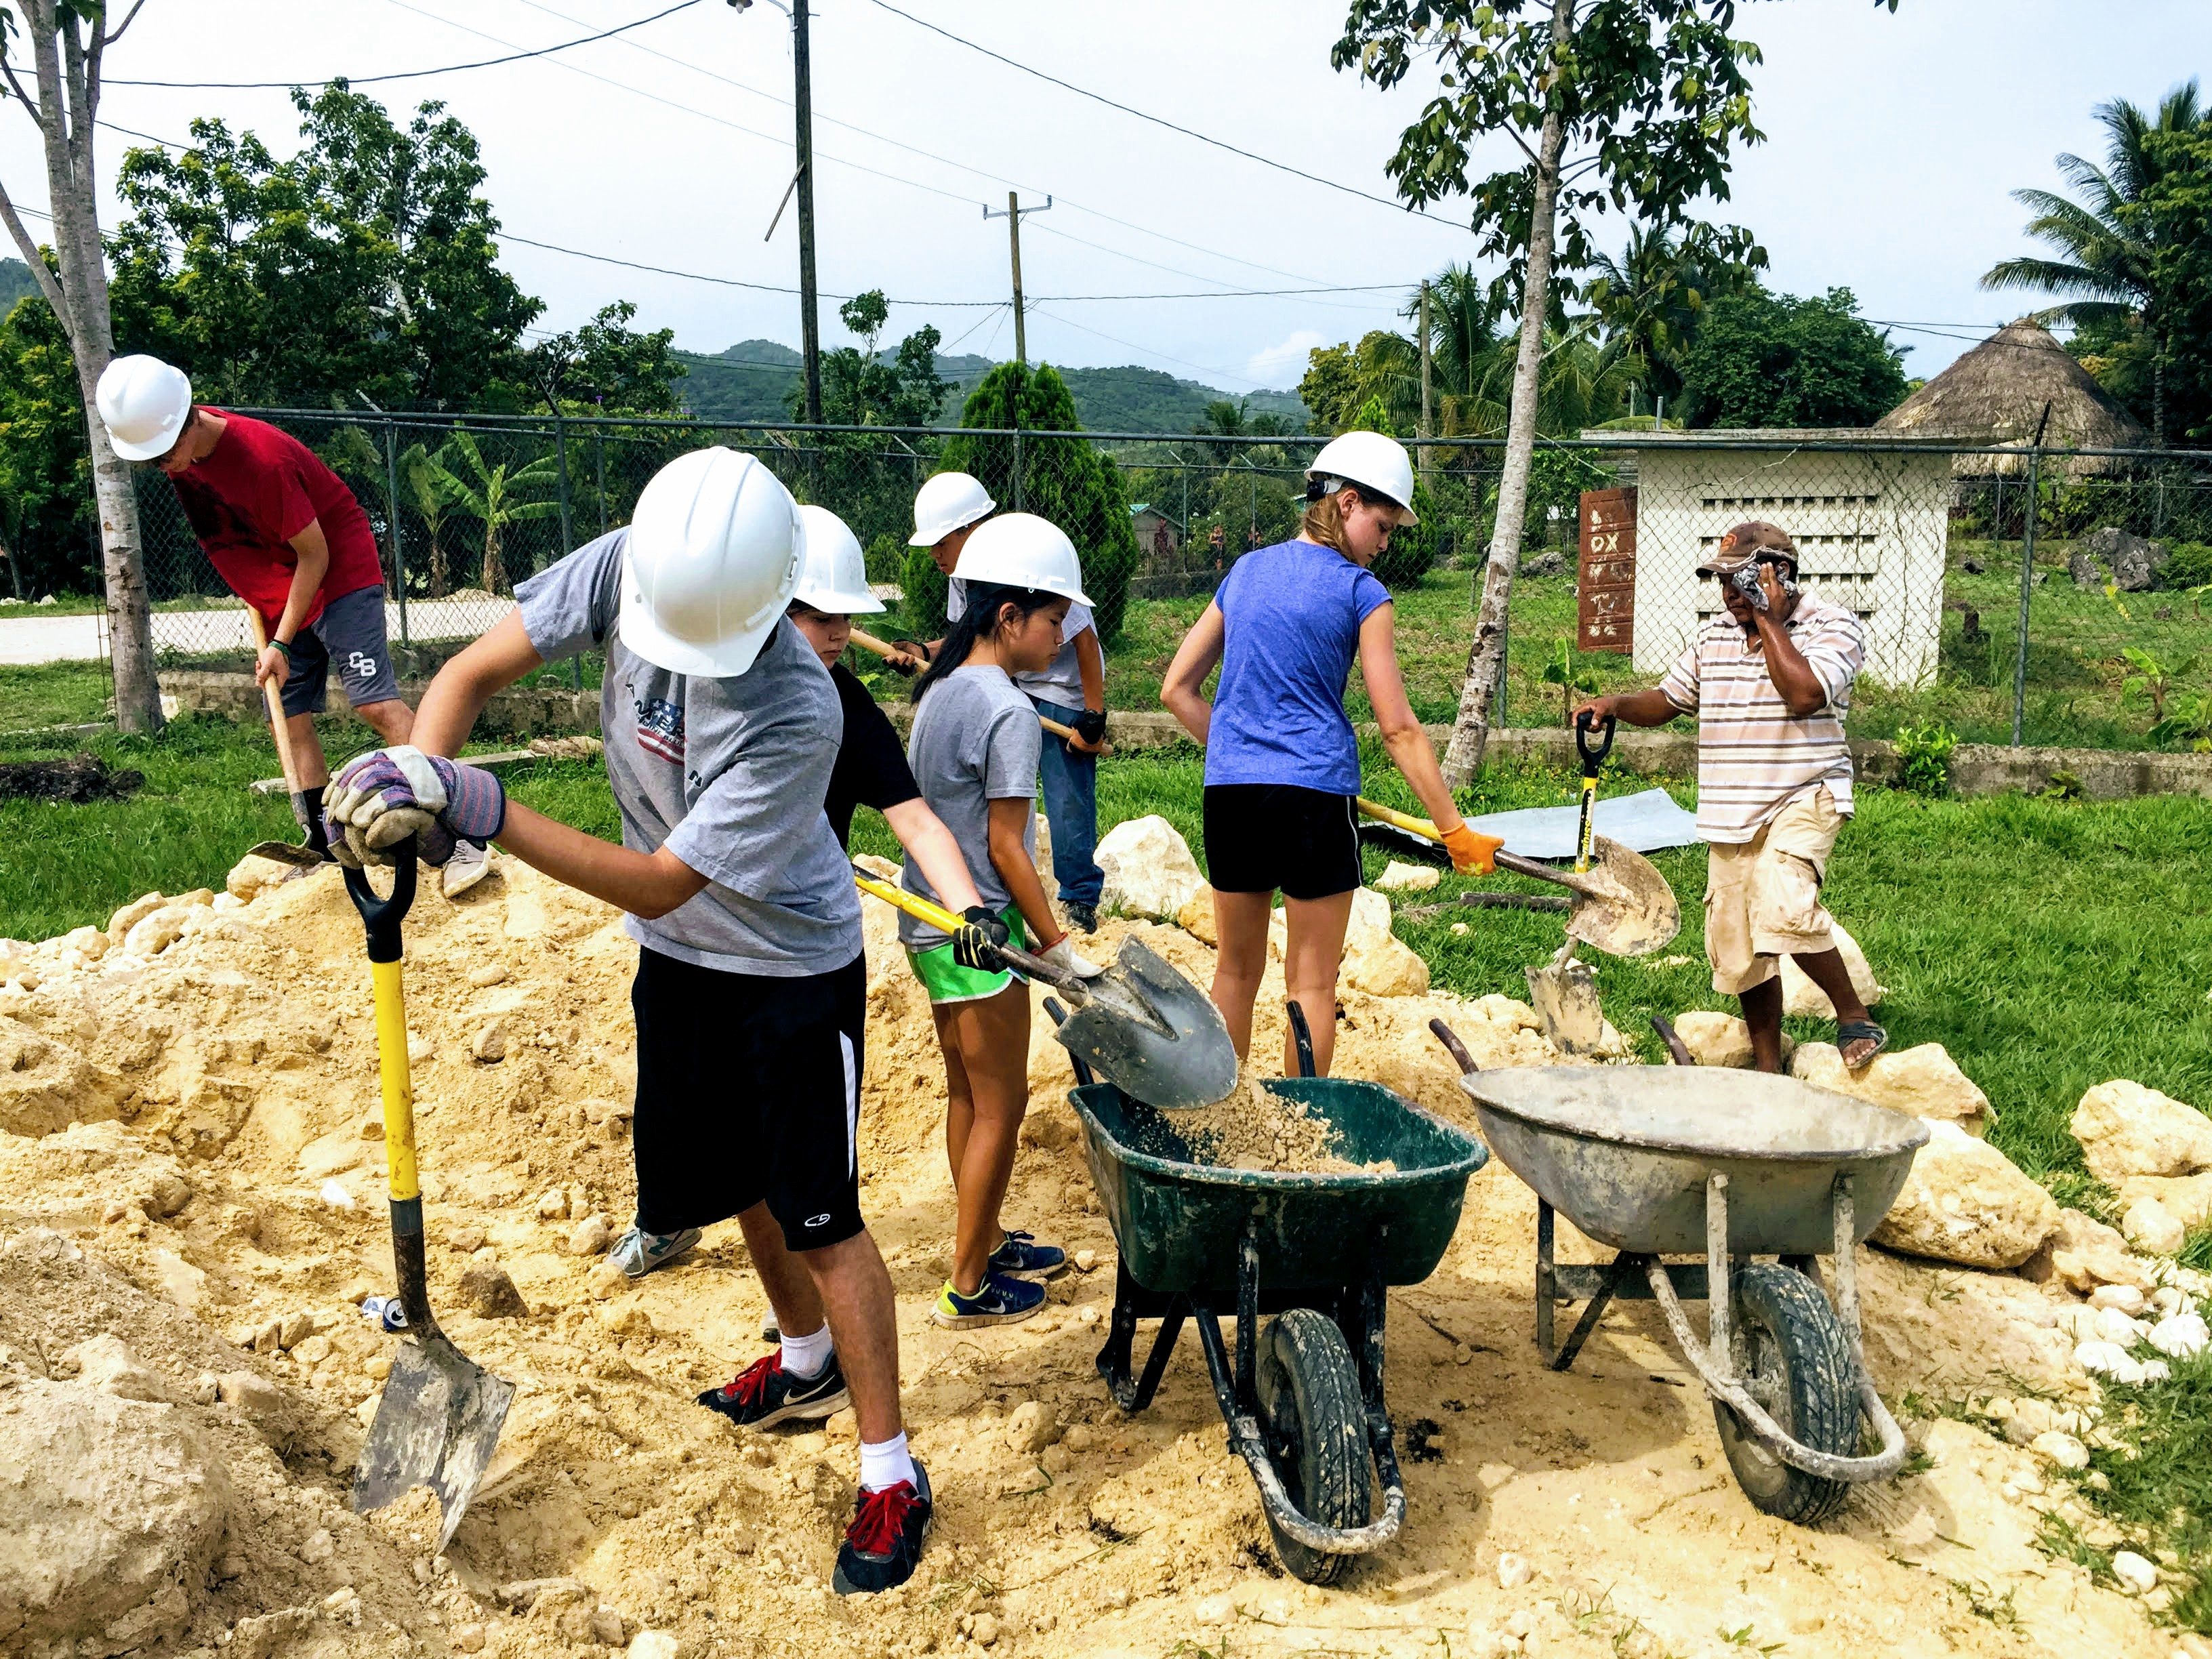 Summer Program - Promoting Volunteerism | Global Routes: Conservation, Culture & Community in Costa Rica